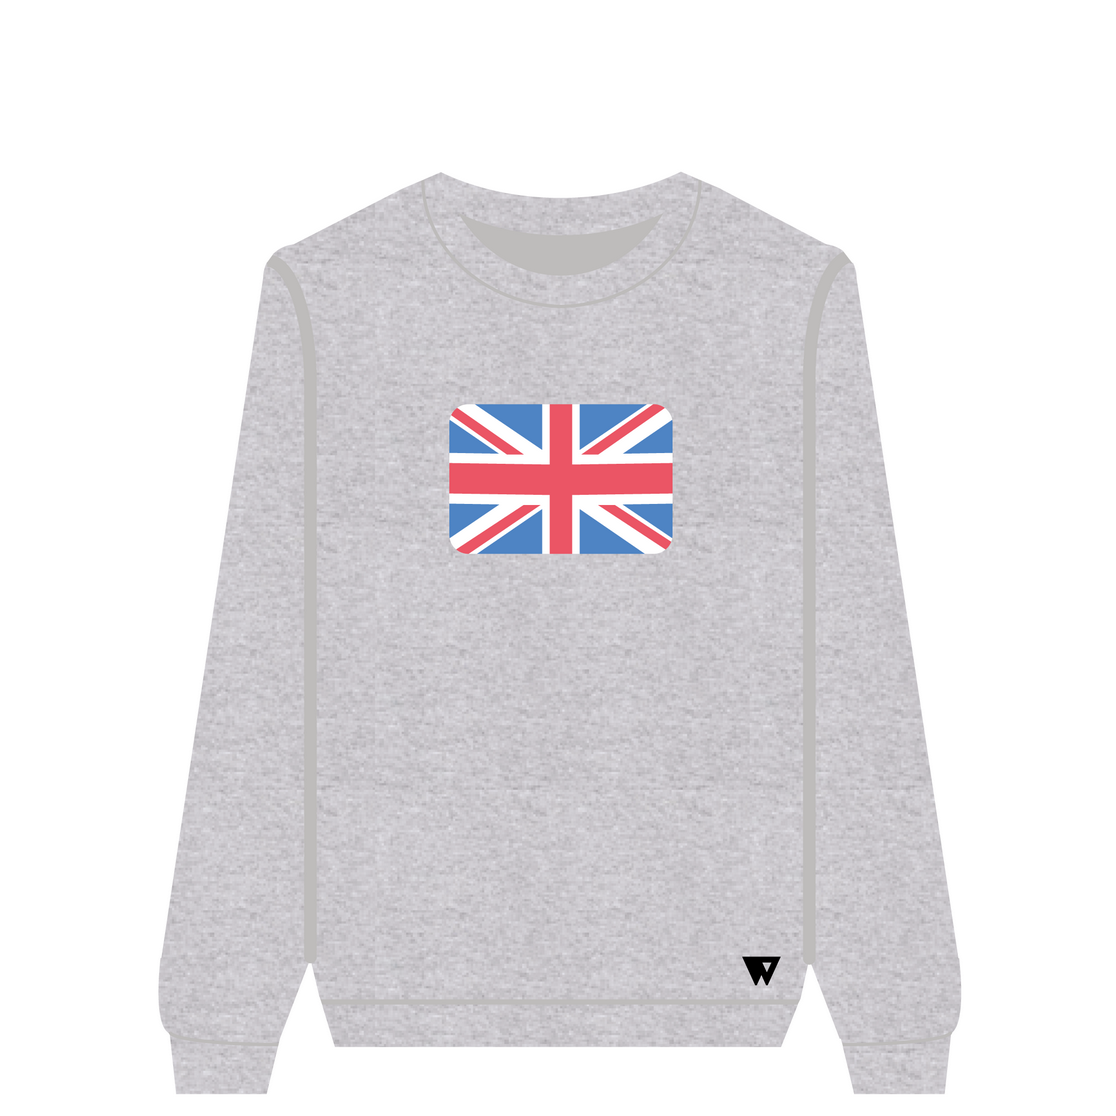 Sweatshirt Uk | Wuzzee